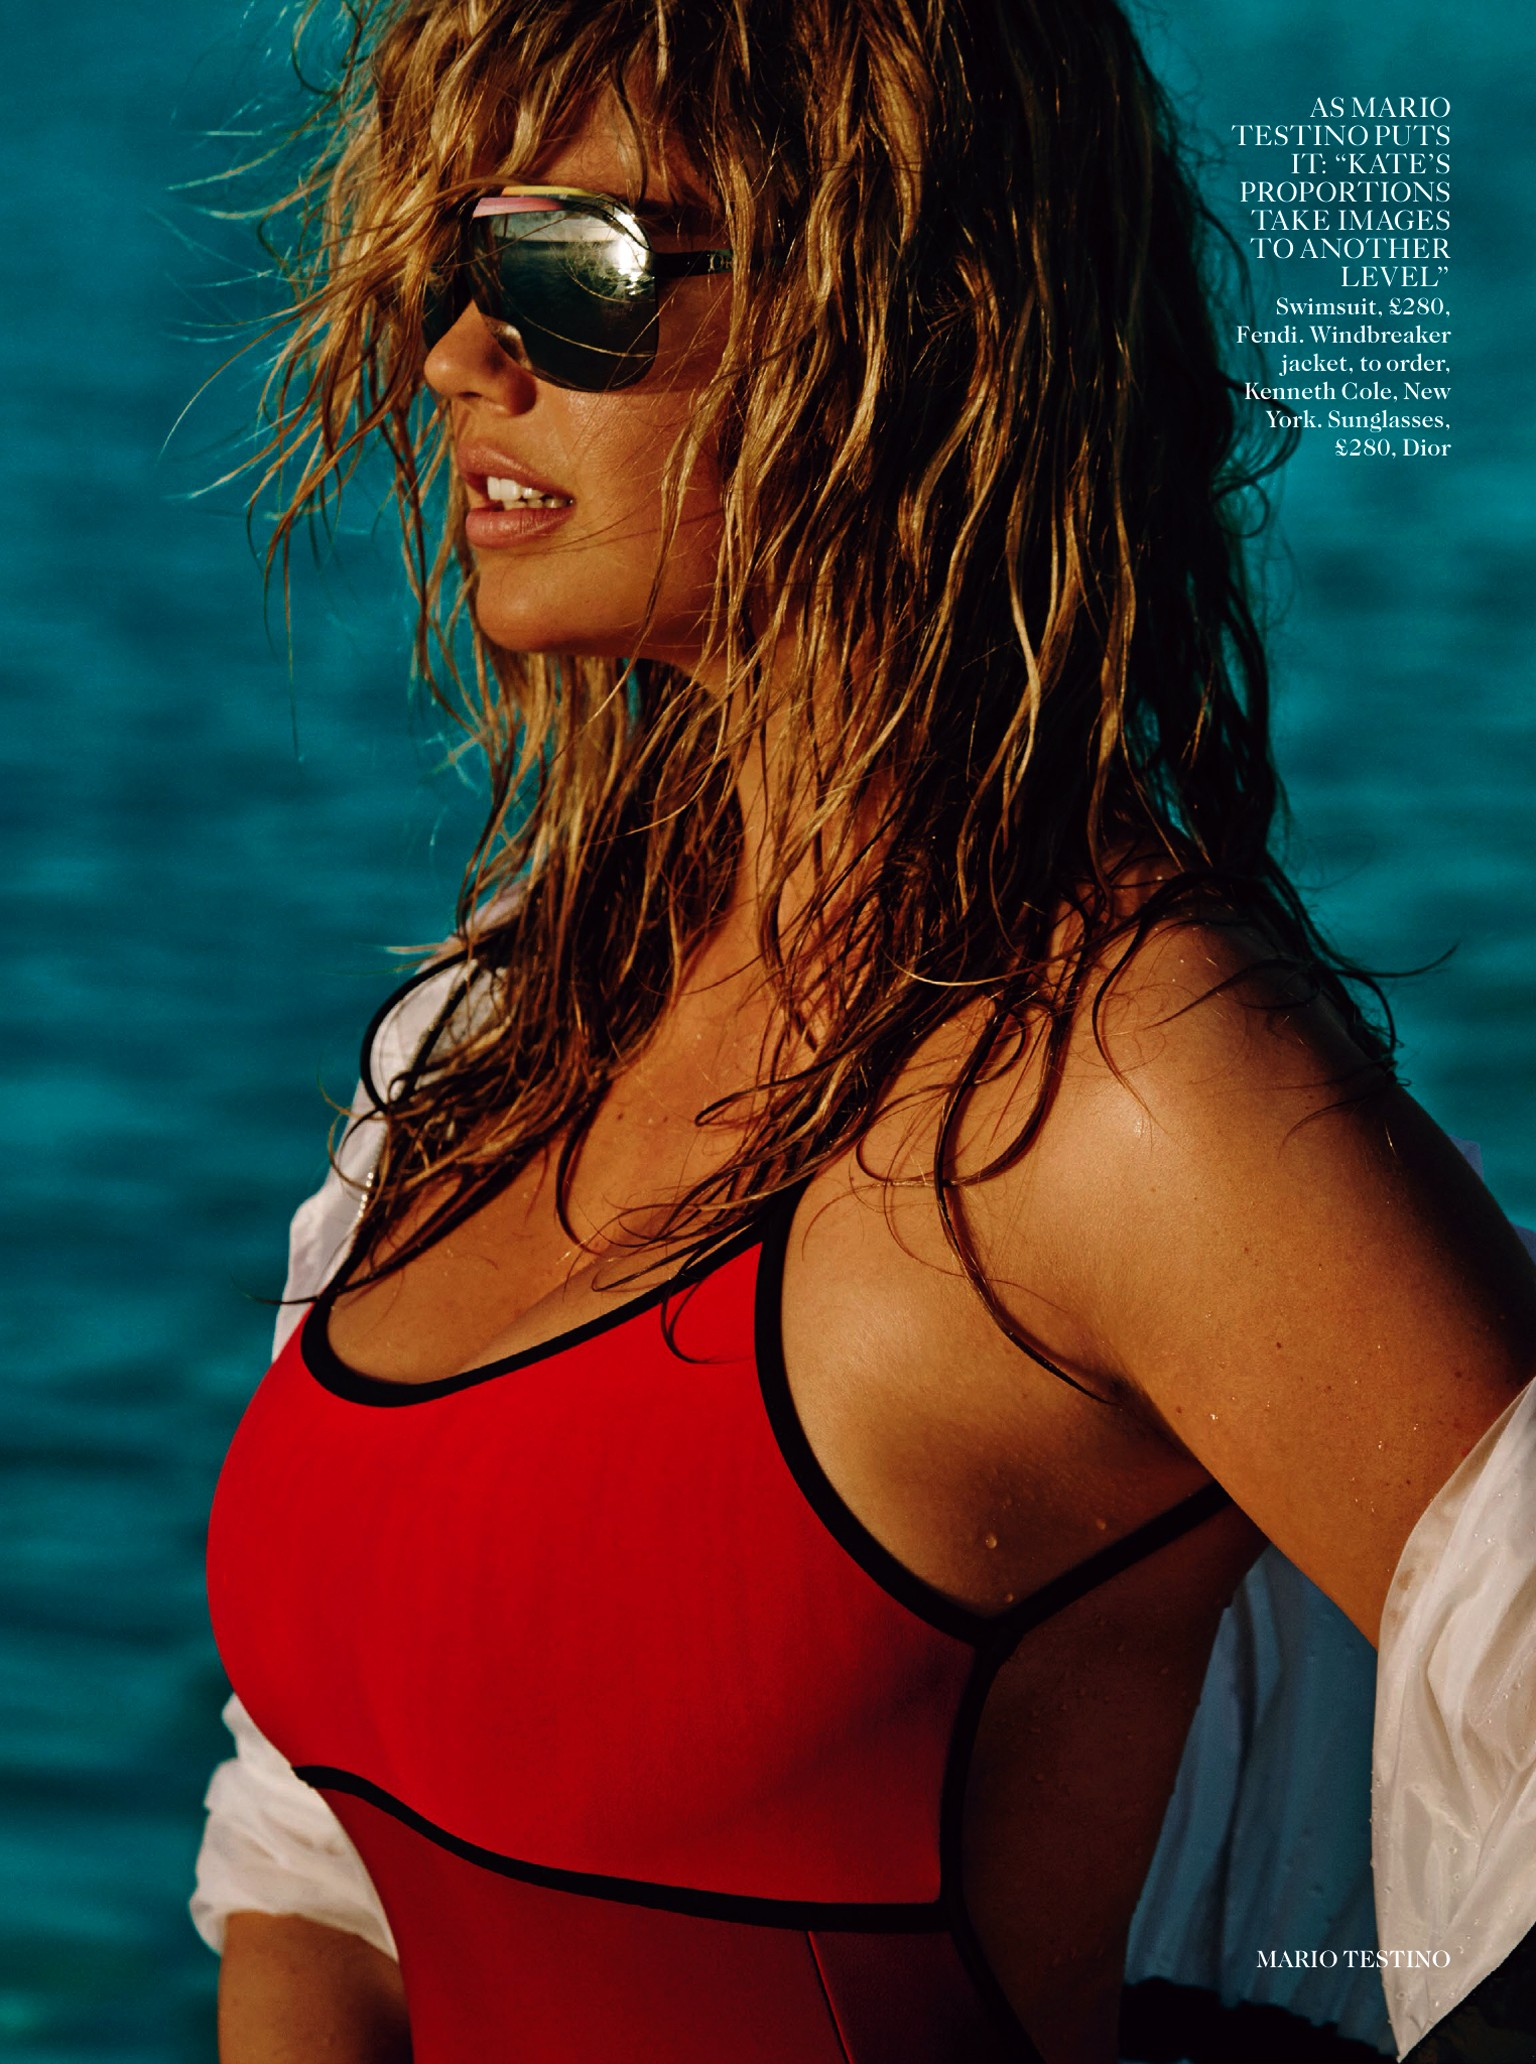 fashion_scans_remastered-kate_upton-vogue_uk-june_2014-scanned_by_vampirehorde-hq-5